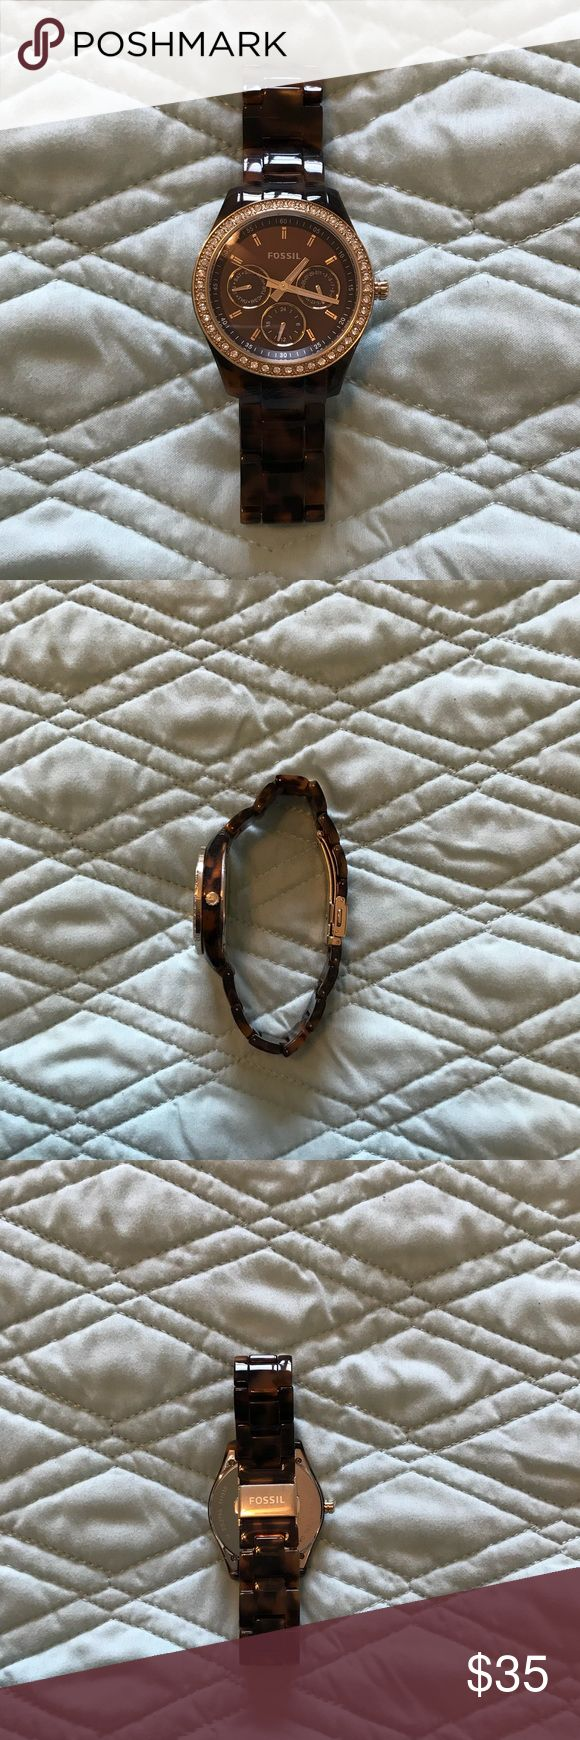 NWOT TORTOISE SHELL FOSSIL WATCH NWOT tortoise shell Fossil watch. Battery works. Goes with everything! Accessories Watches